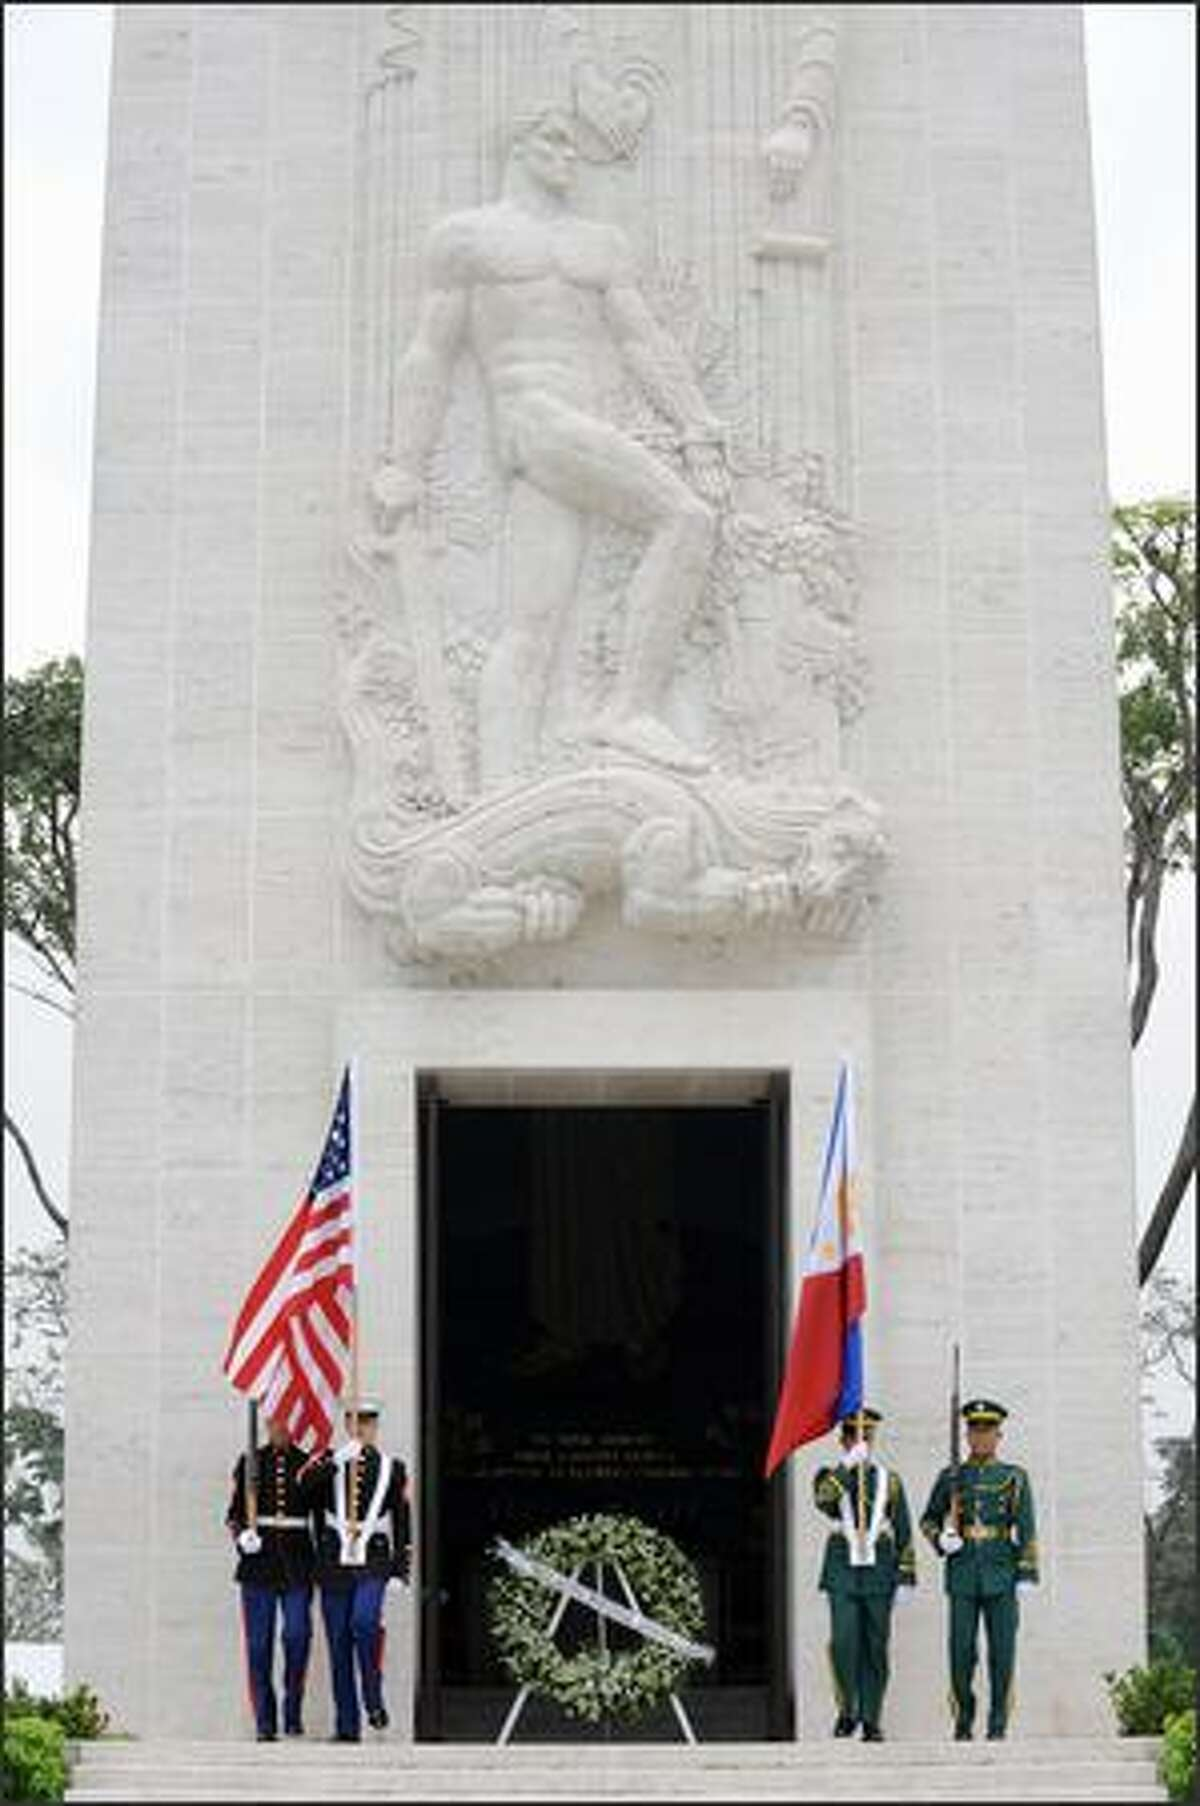 Philippine and U.S. military honor guards carry the flags of the Philippines and the U.S. at the war memorial at Manila American Cemetery during the annual Veterans' Day ceremony in Manila on Tuesday. The Veterans' Day mark the end of hosilities of World War I when the Armistice was signed November 11 -- the eleventh hour of the eleventh day of the eleventh month in 1918.